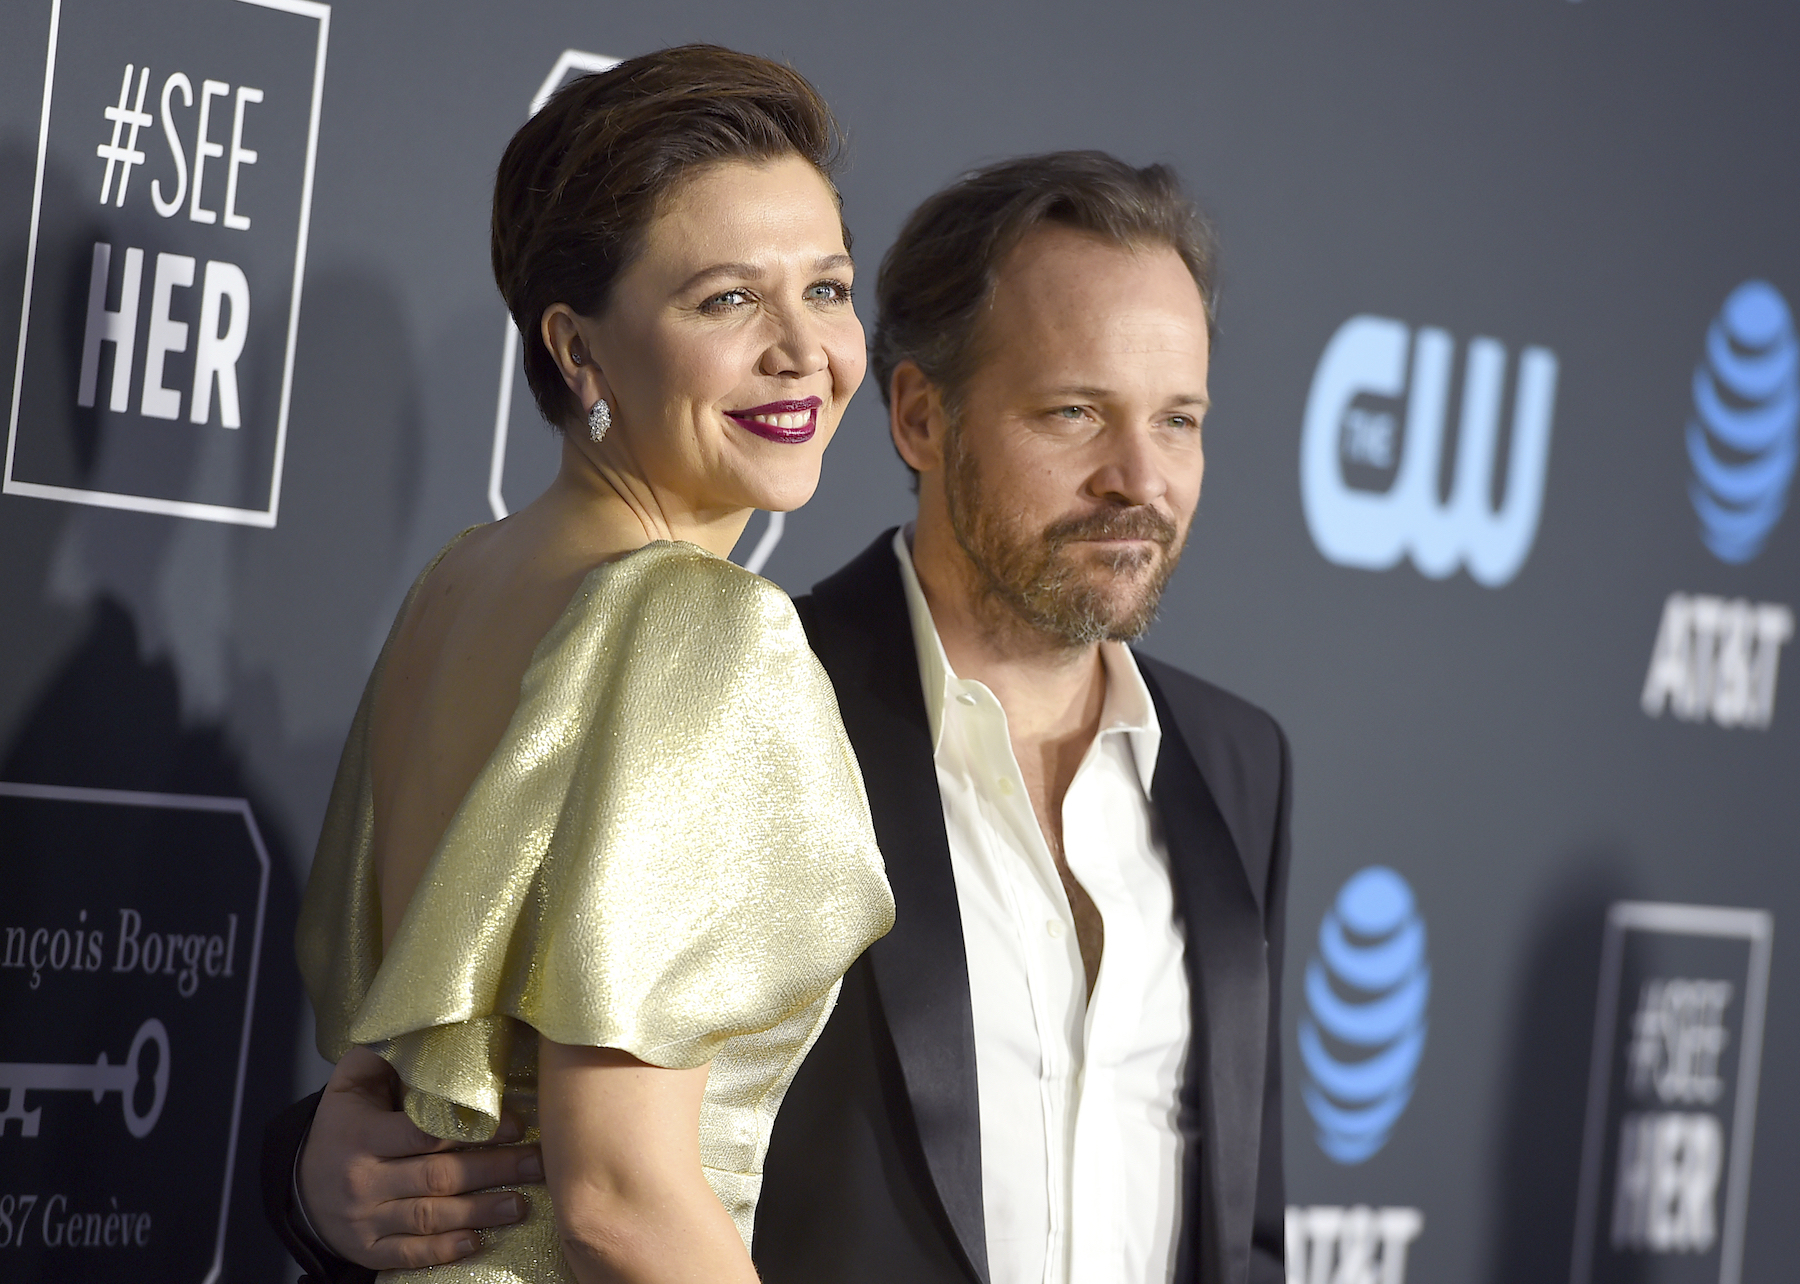 "<div class=""meta image-caption""><div class=""origin-logo origin-image ap""><span>AP</span></div><span class=""caption-text"">Peter Sarsgaard, right, and Maggie Gyllenhaal arrive at the 24th annual Critics' Choice Awards on Sunday, Jan. 13, 2019, at the Barker Hangar in Santa Monica, Calif. (Jordan Strauss/Invision/AP)</span></div>"